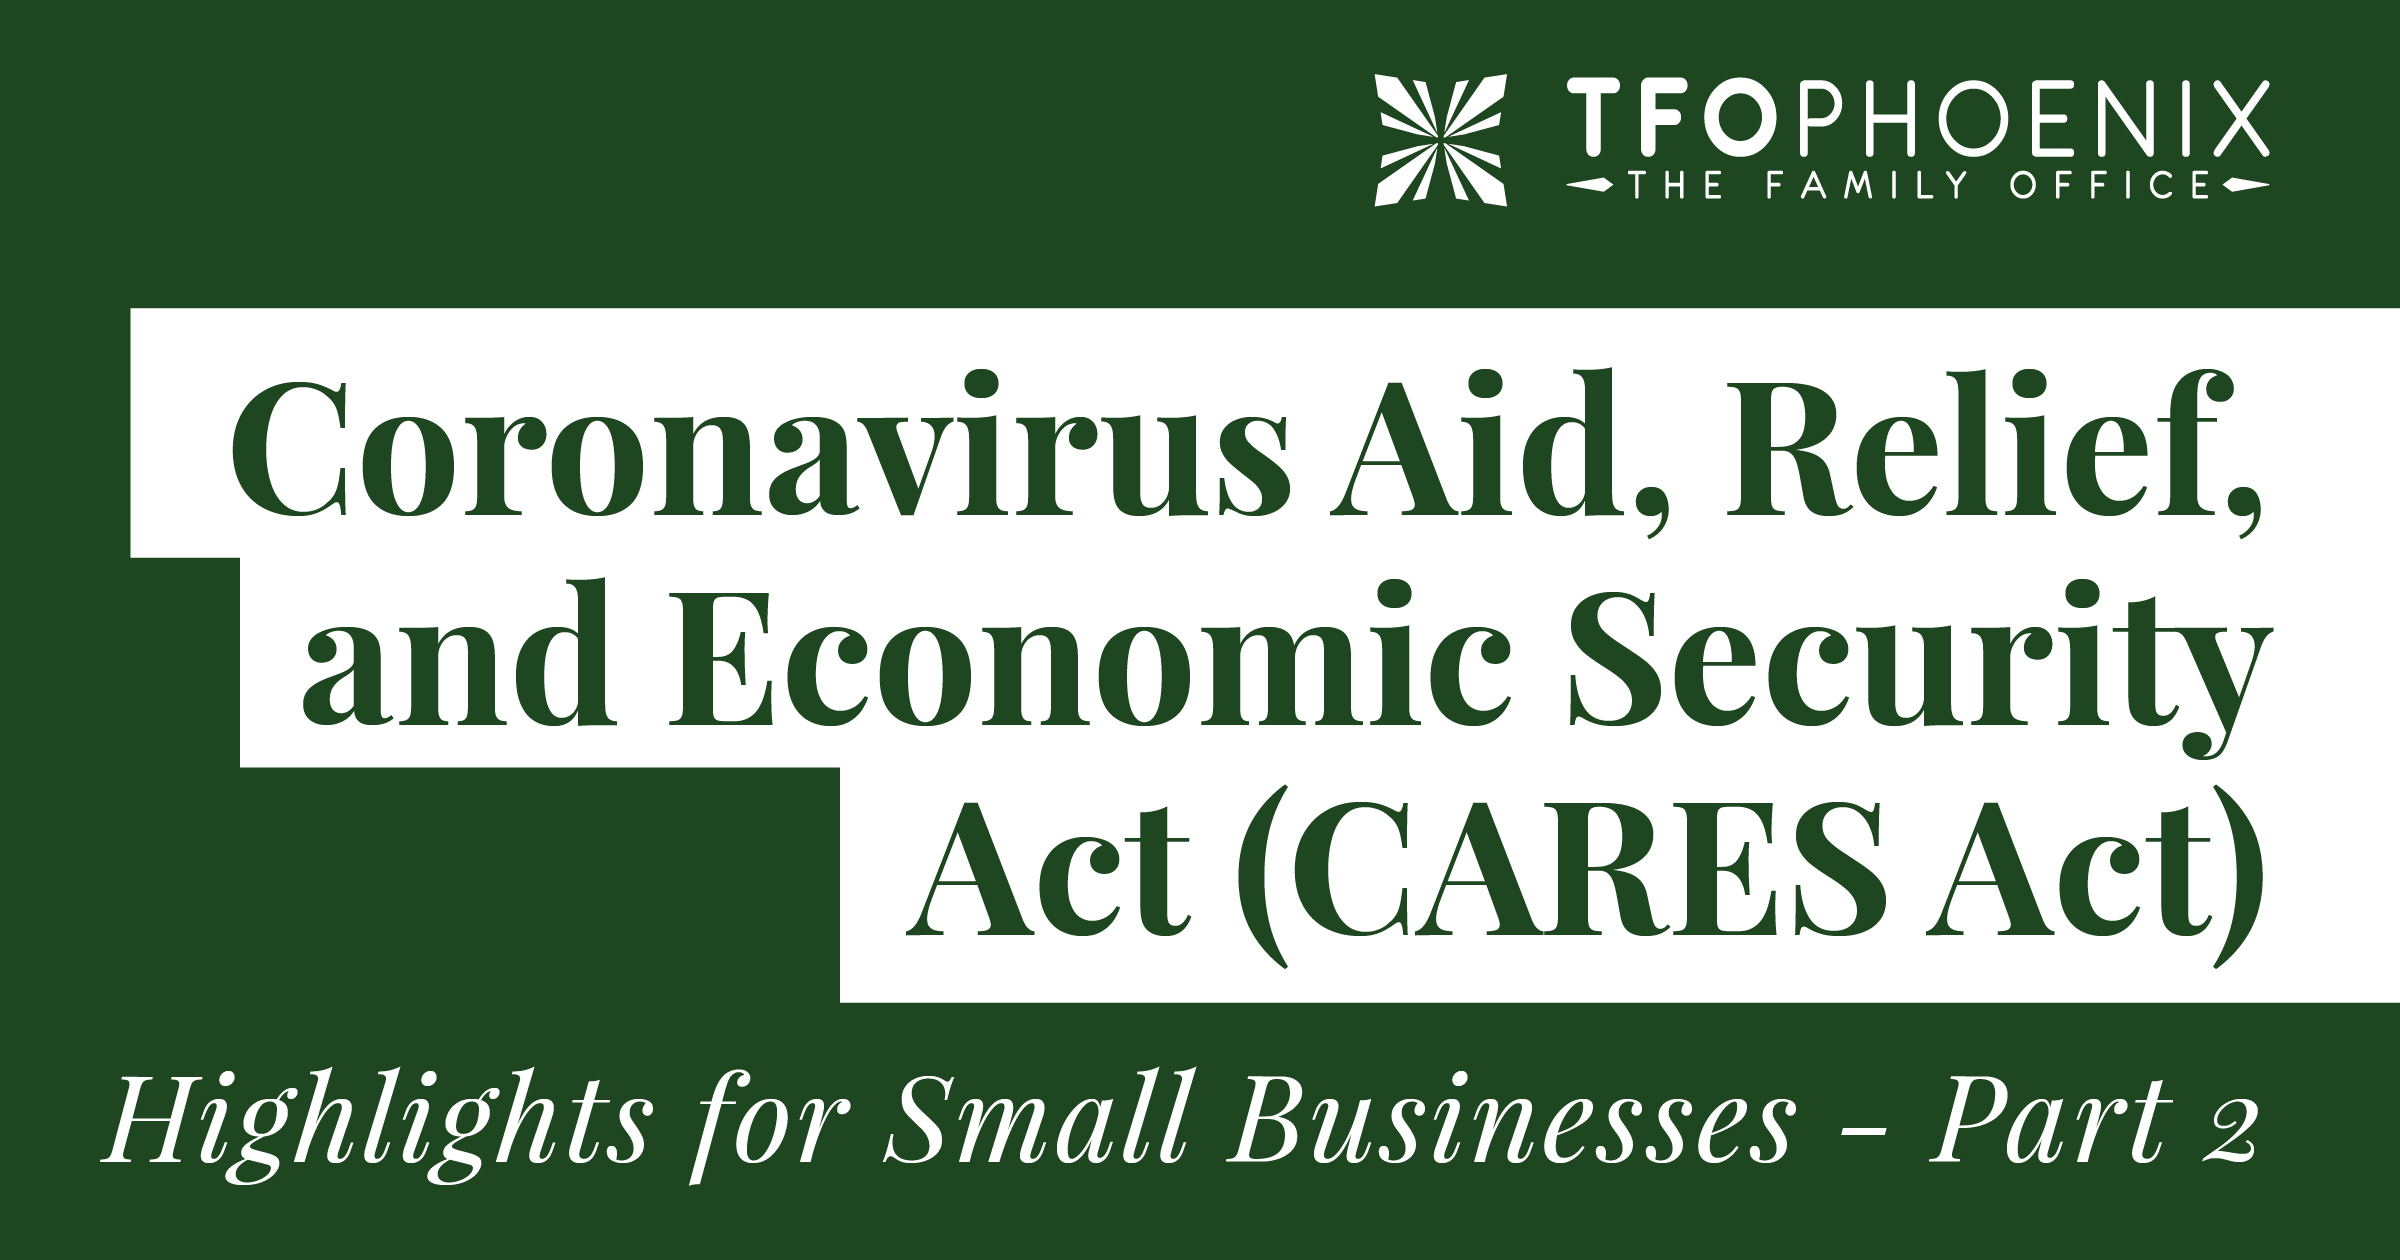 CARES Act – Highlights for Small Businesses – Part 2